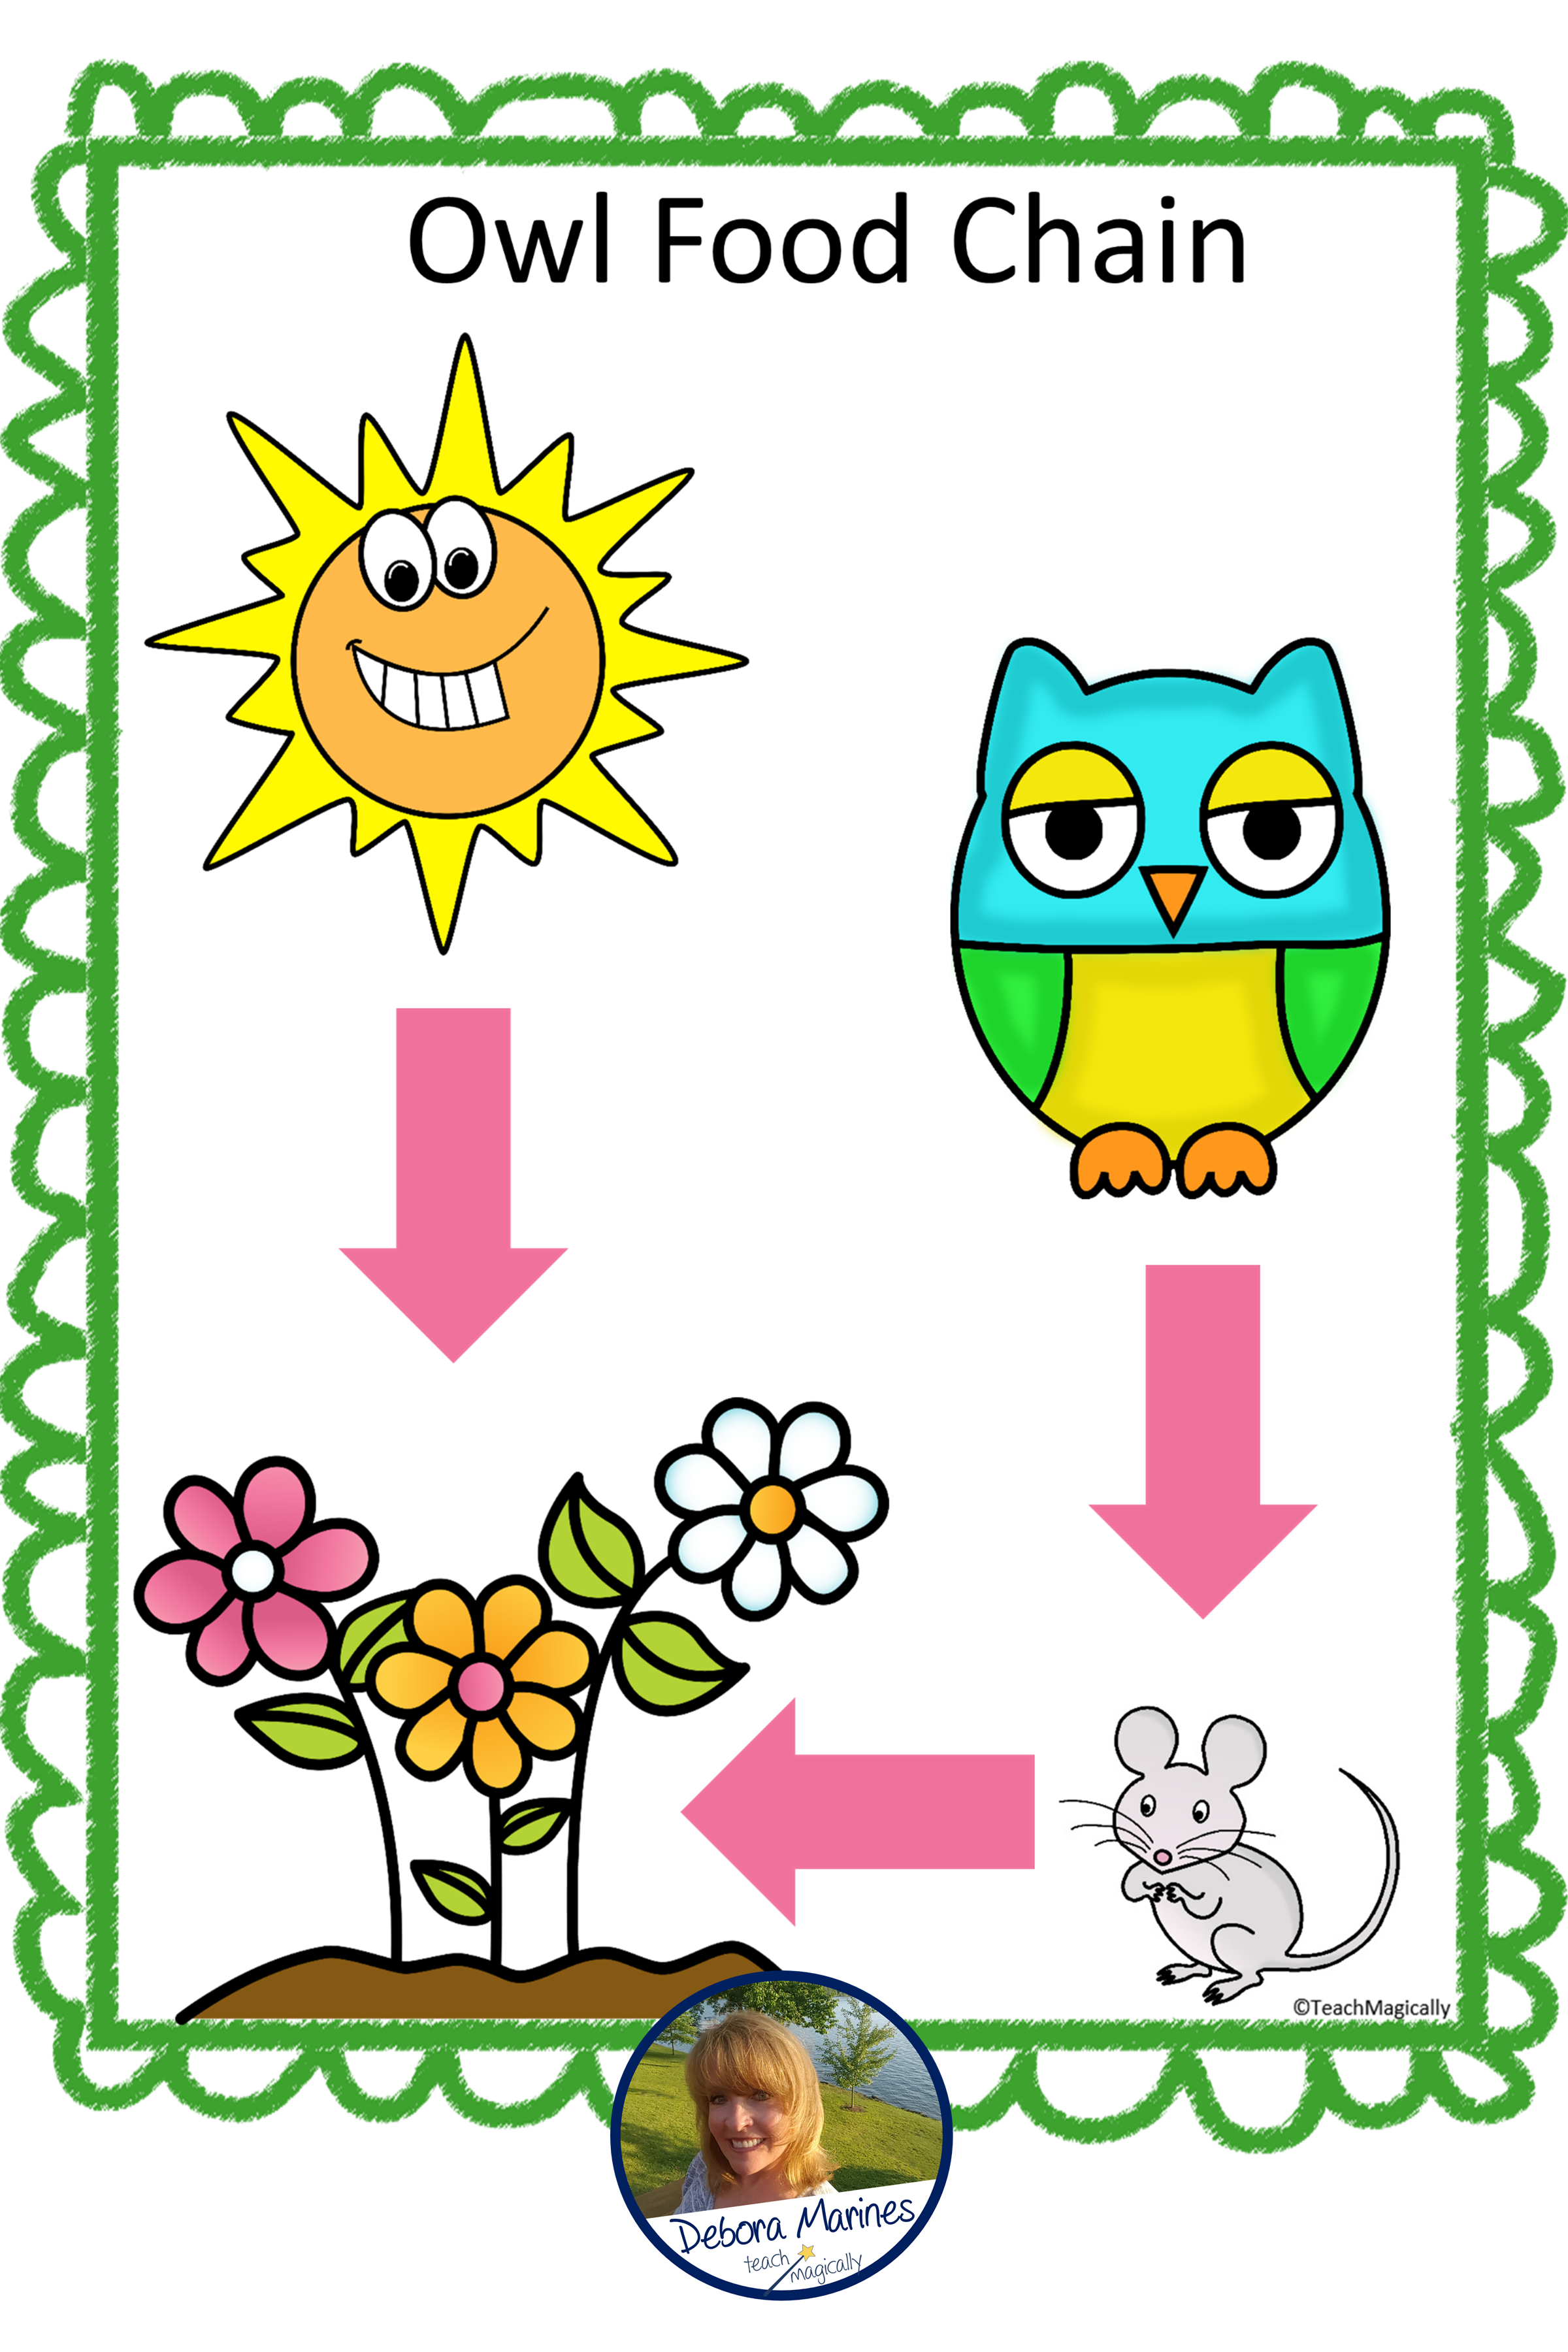 Stem Activities And Challenge Owl Food Chain Game